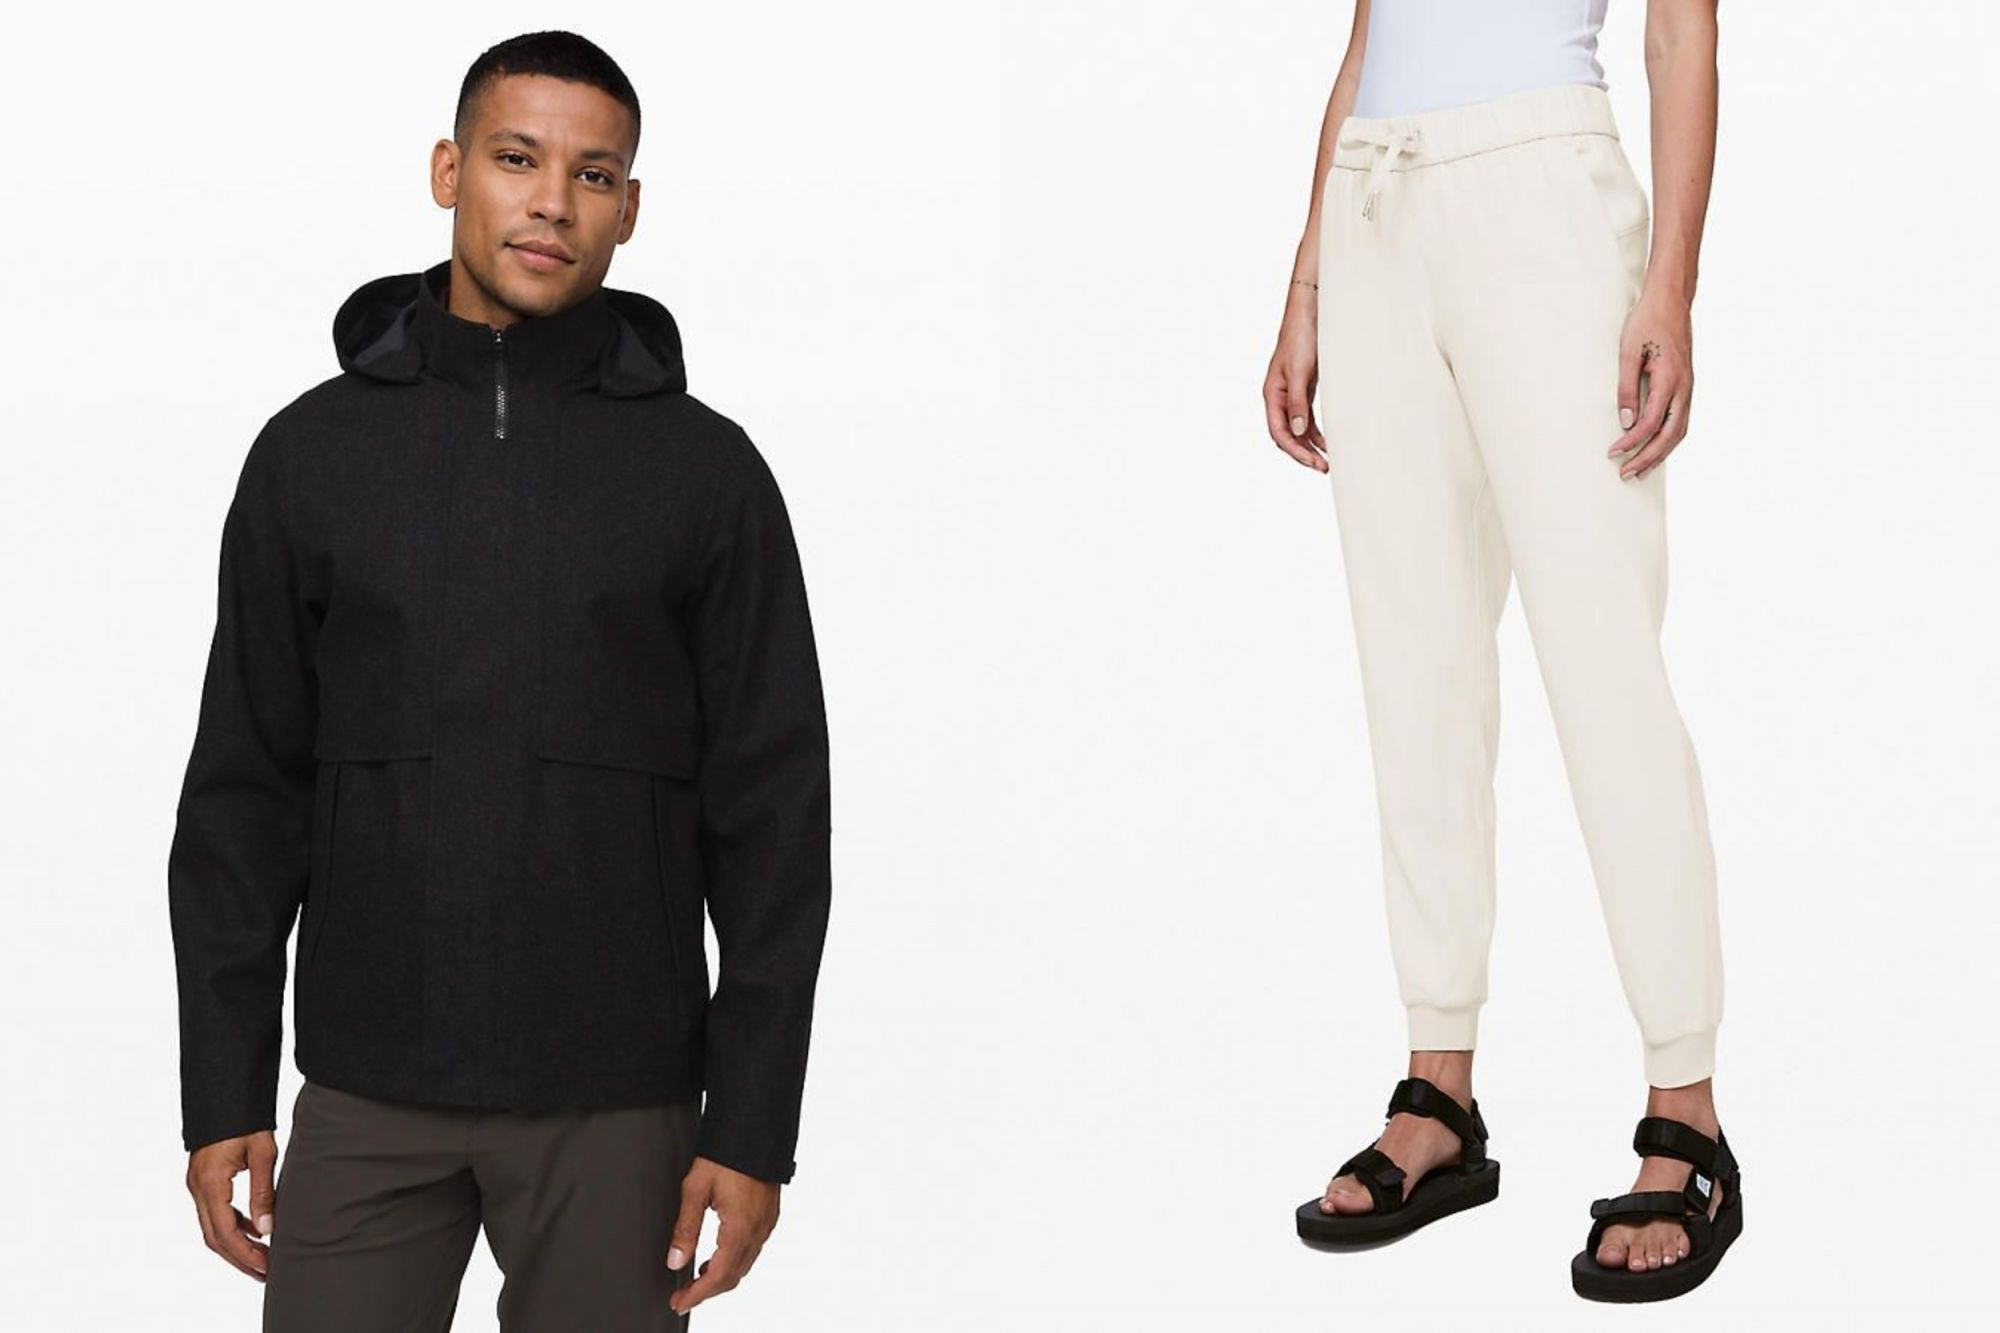 Don't Miss Out On The Lululemon Sale Happening Now